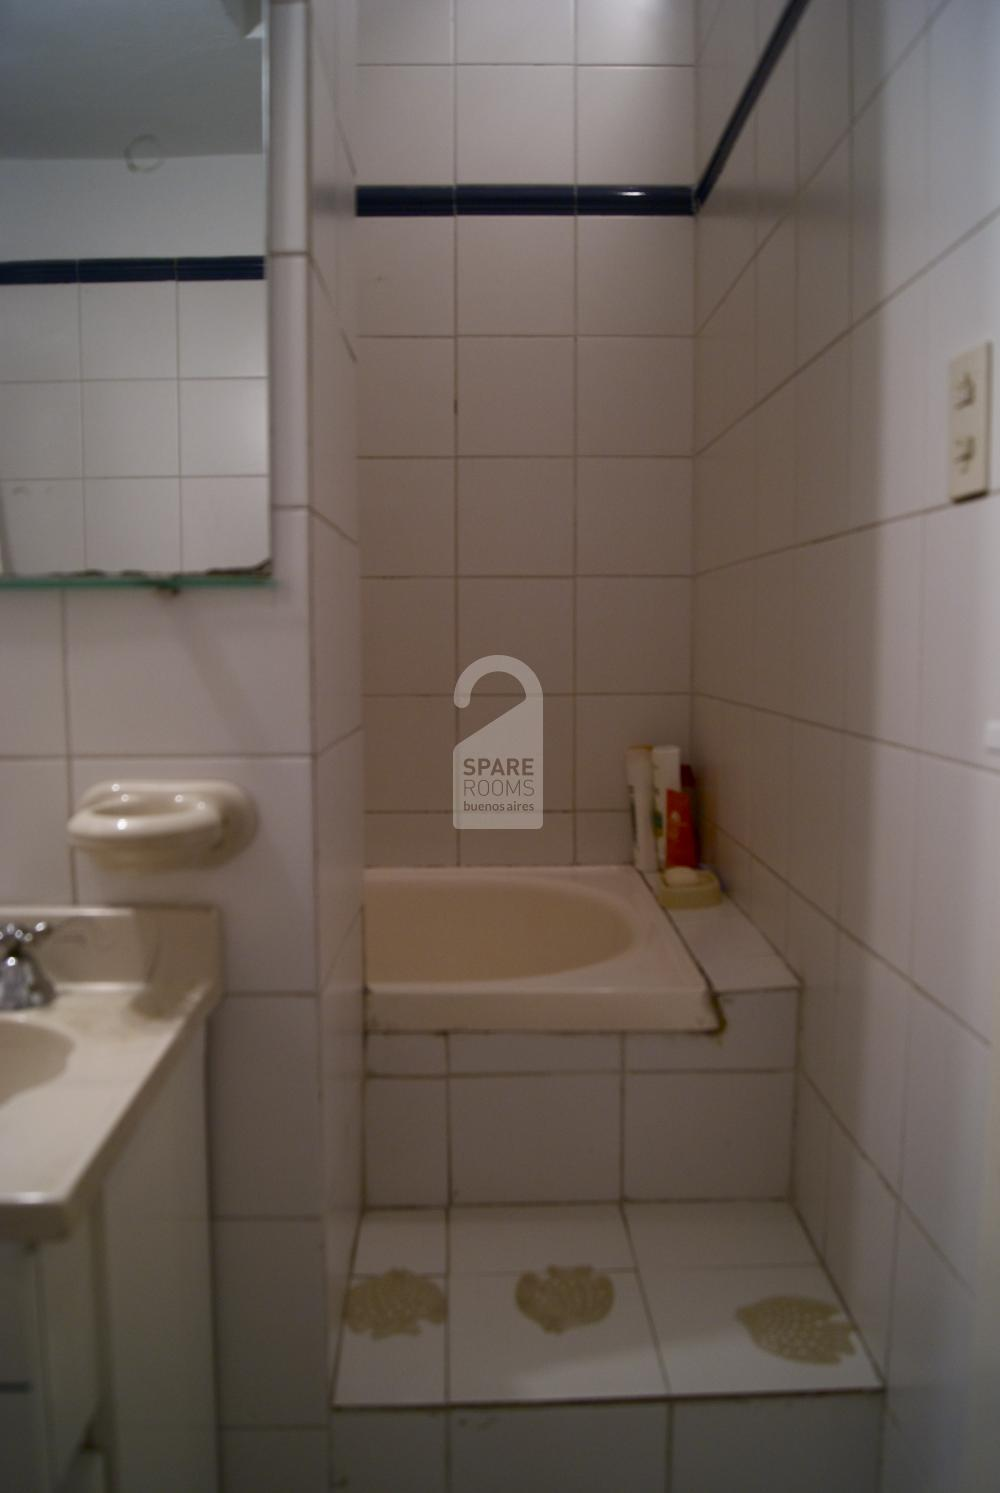 Shared bathroom with the other room